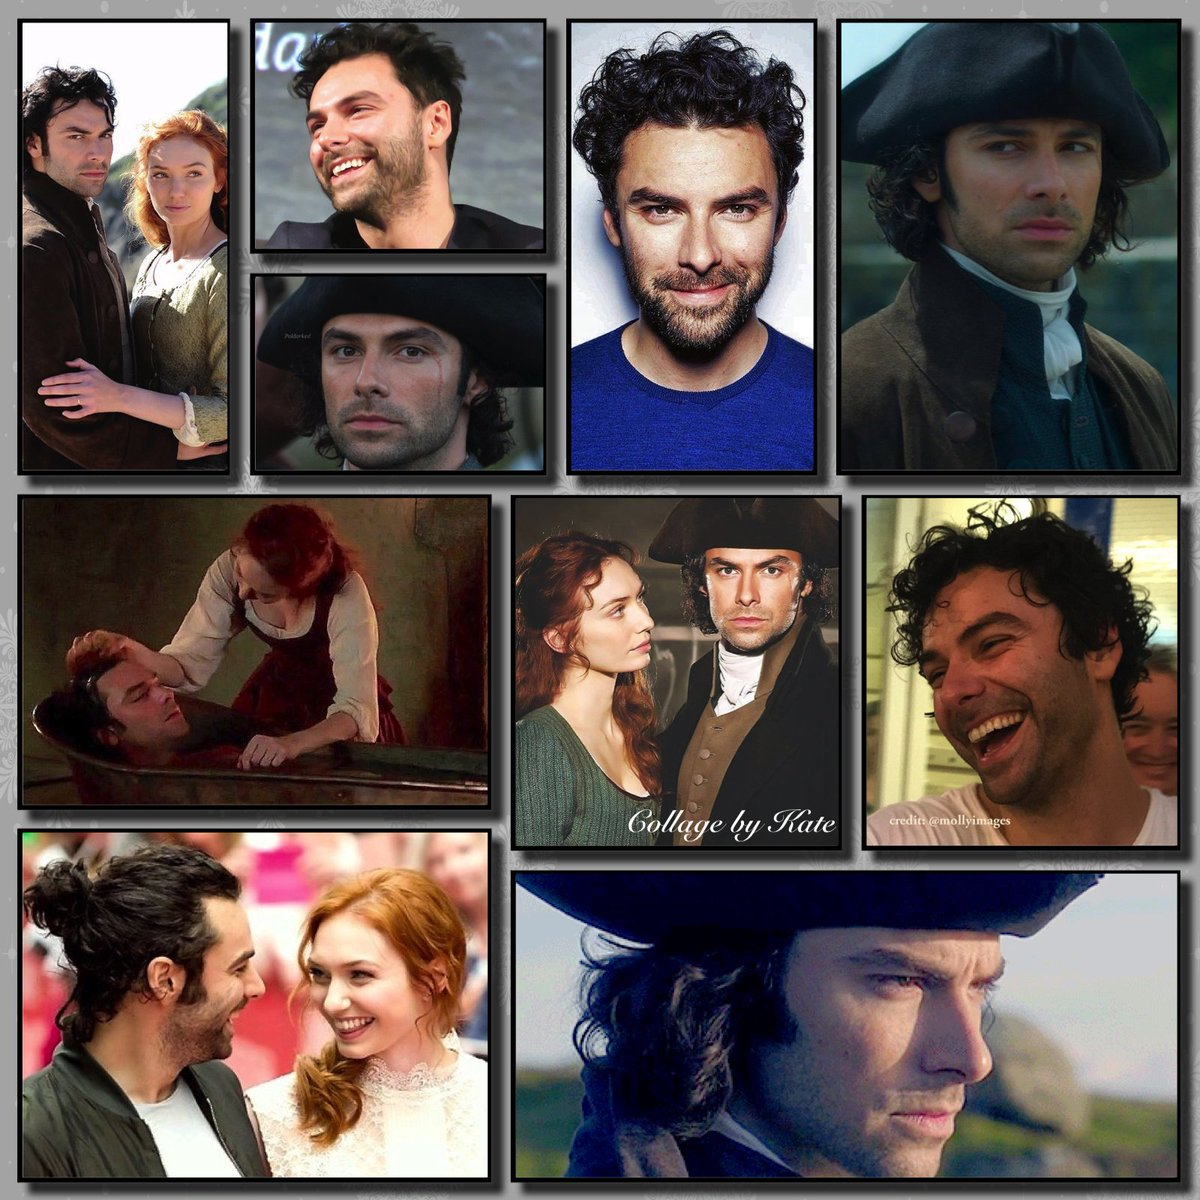 Good Morning! I wish you a great #TurnerTuesday #TurnerTomlinsonTuesday #TricornTuesday #AidanCrew #AidanTurner #Poldark<br>http://pic.twitter.com/zufiTy5Qoh